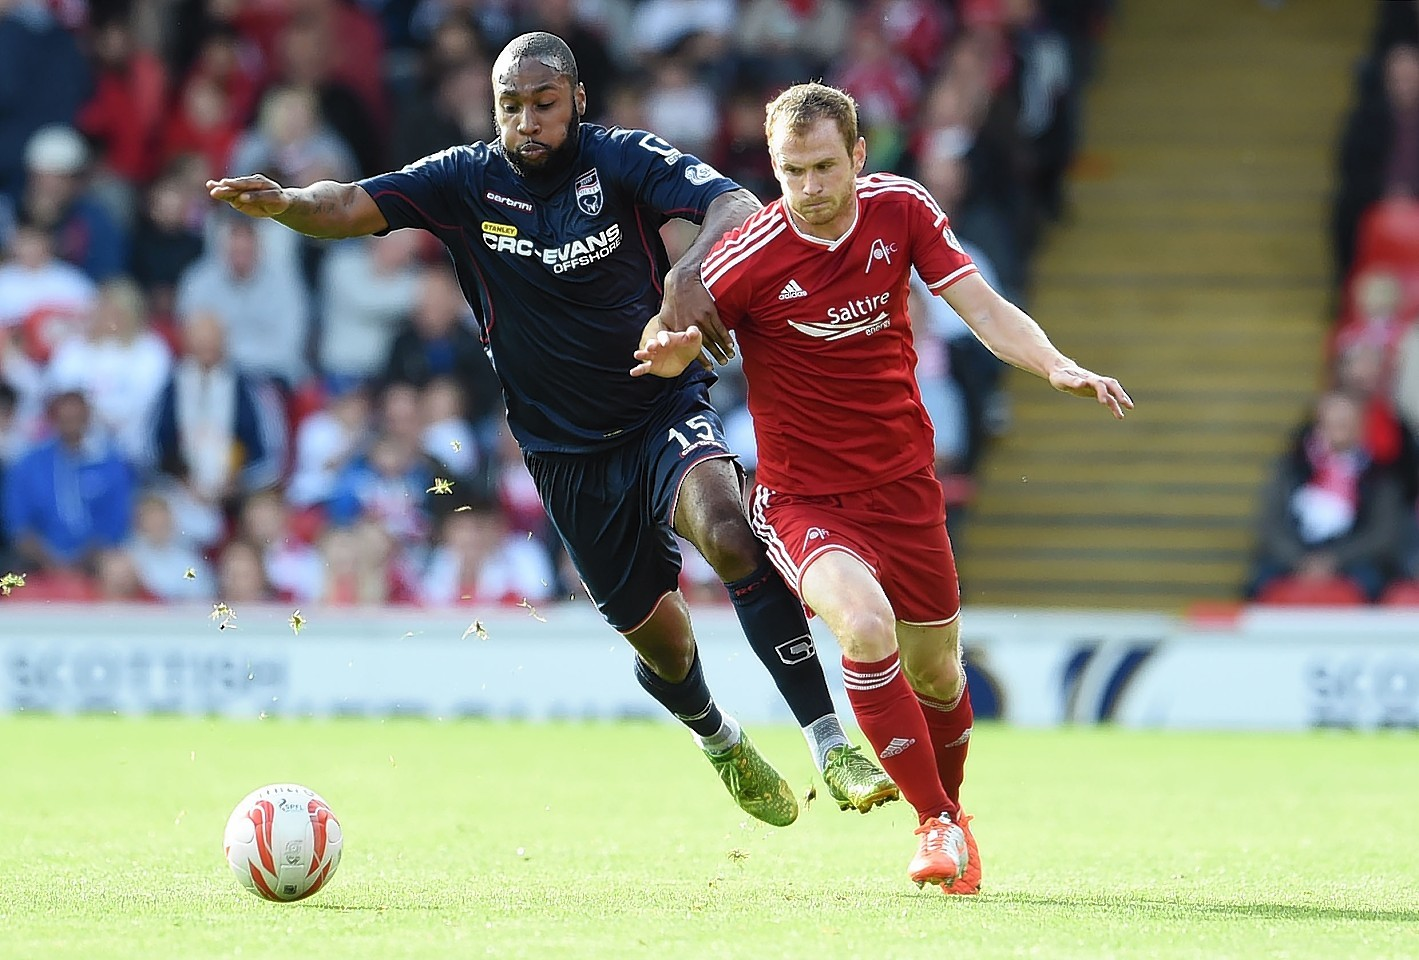 Yoann Arquin fights for the ball against the Dons